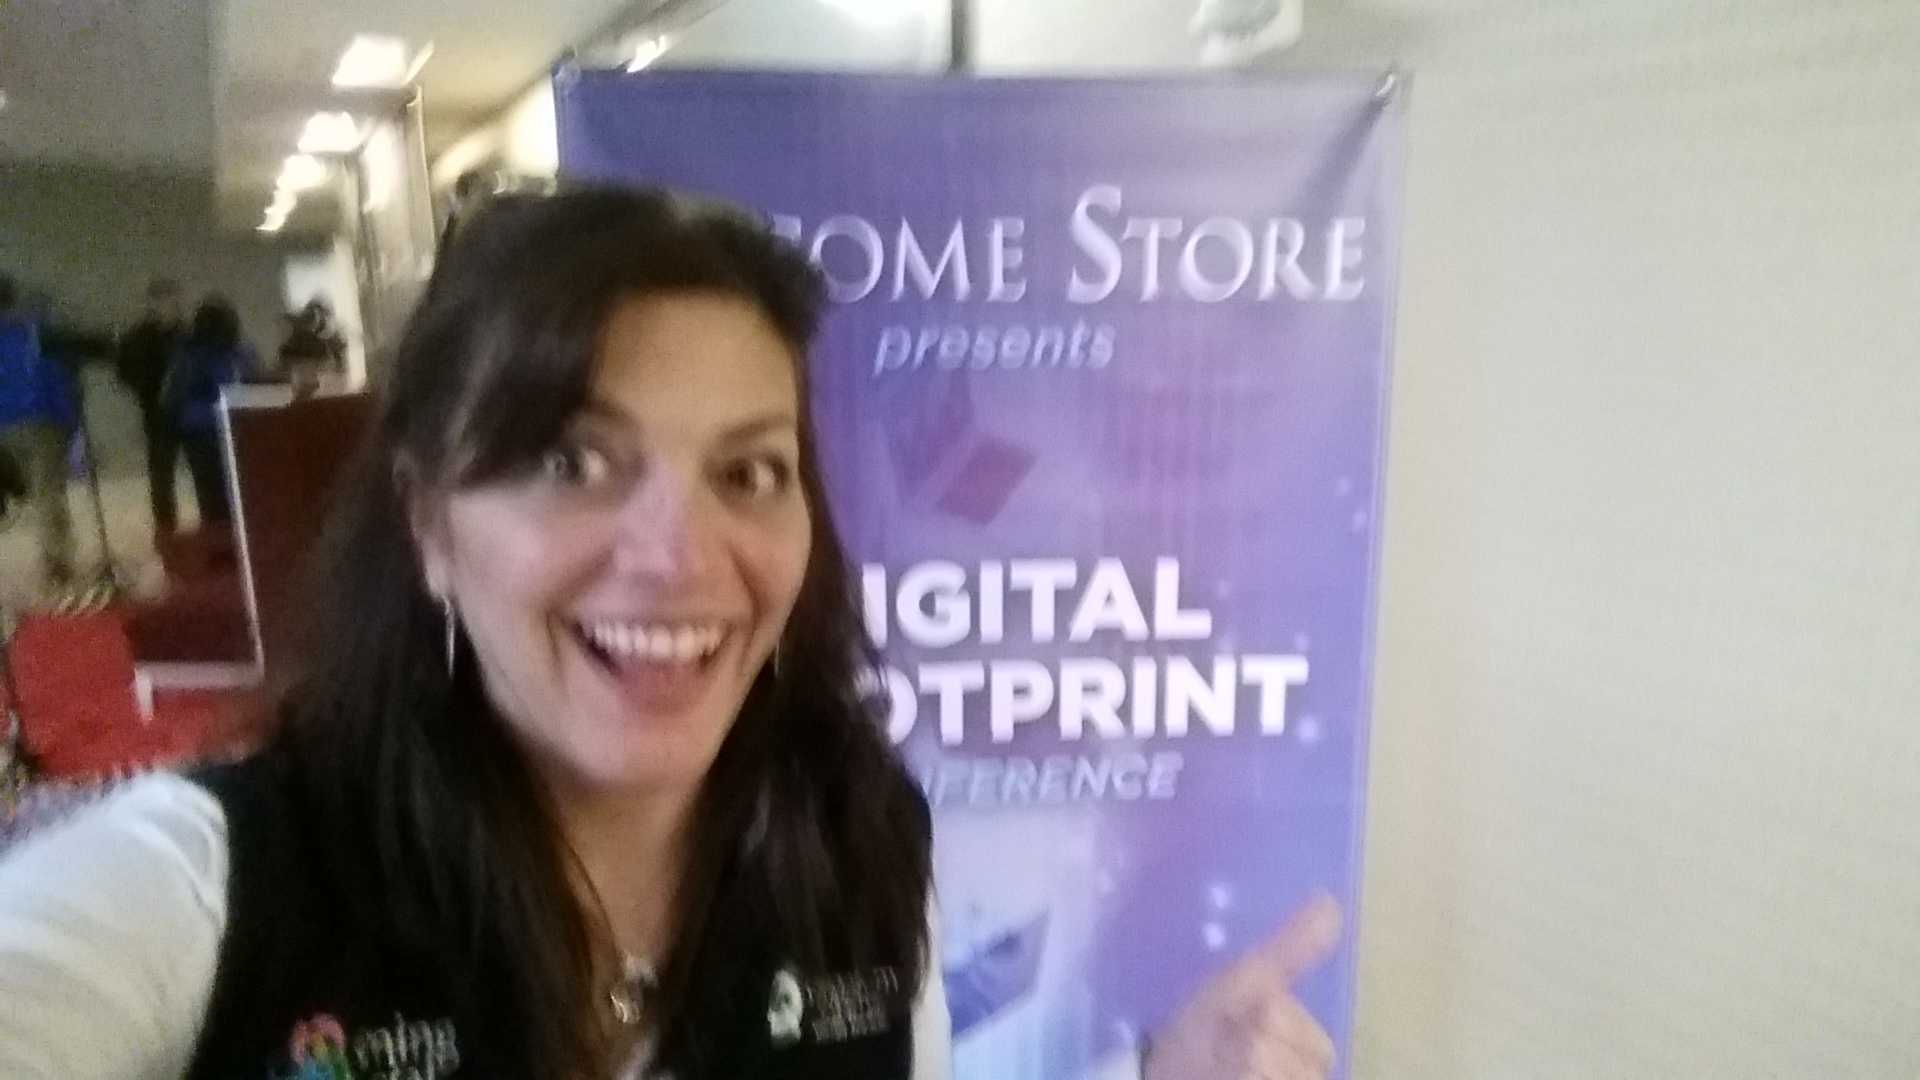 Monica Amadio at the Digital Footprint Conference